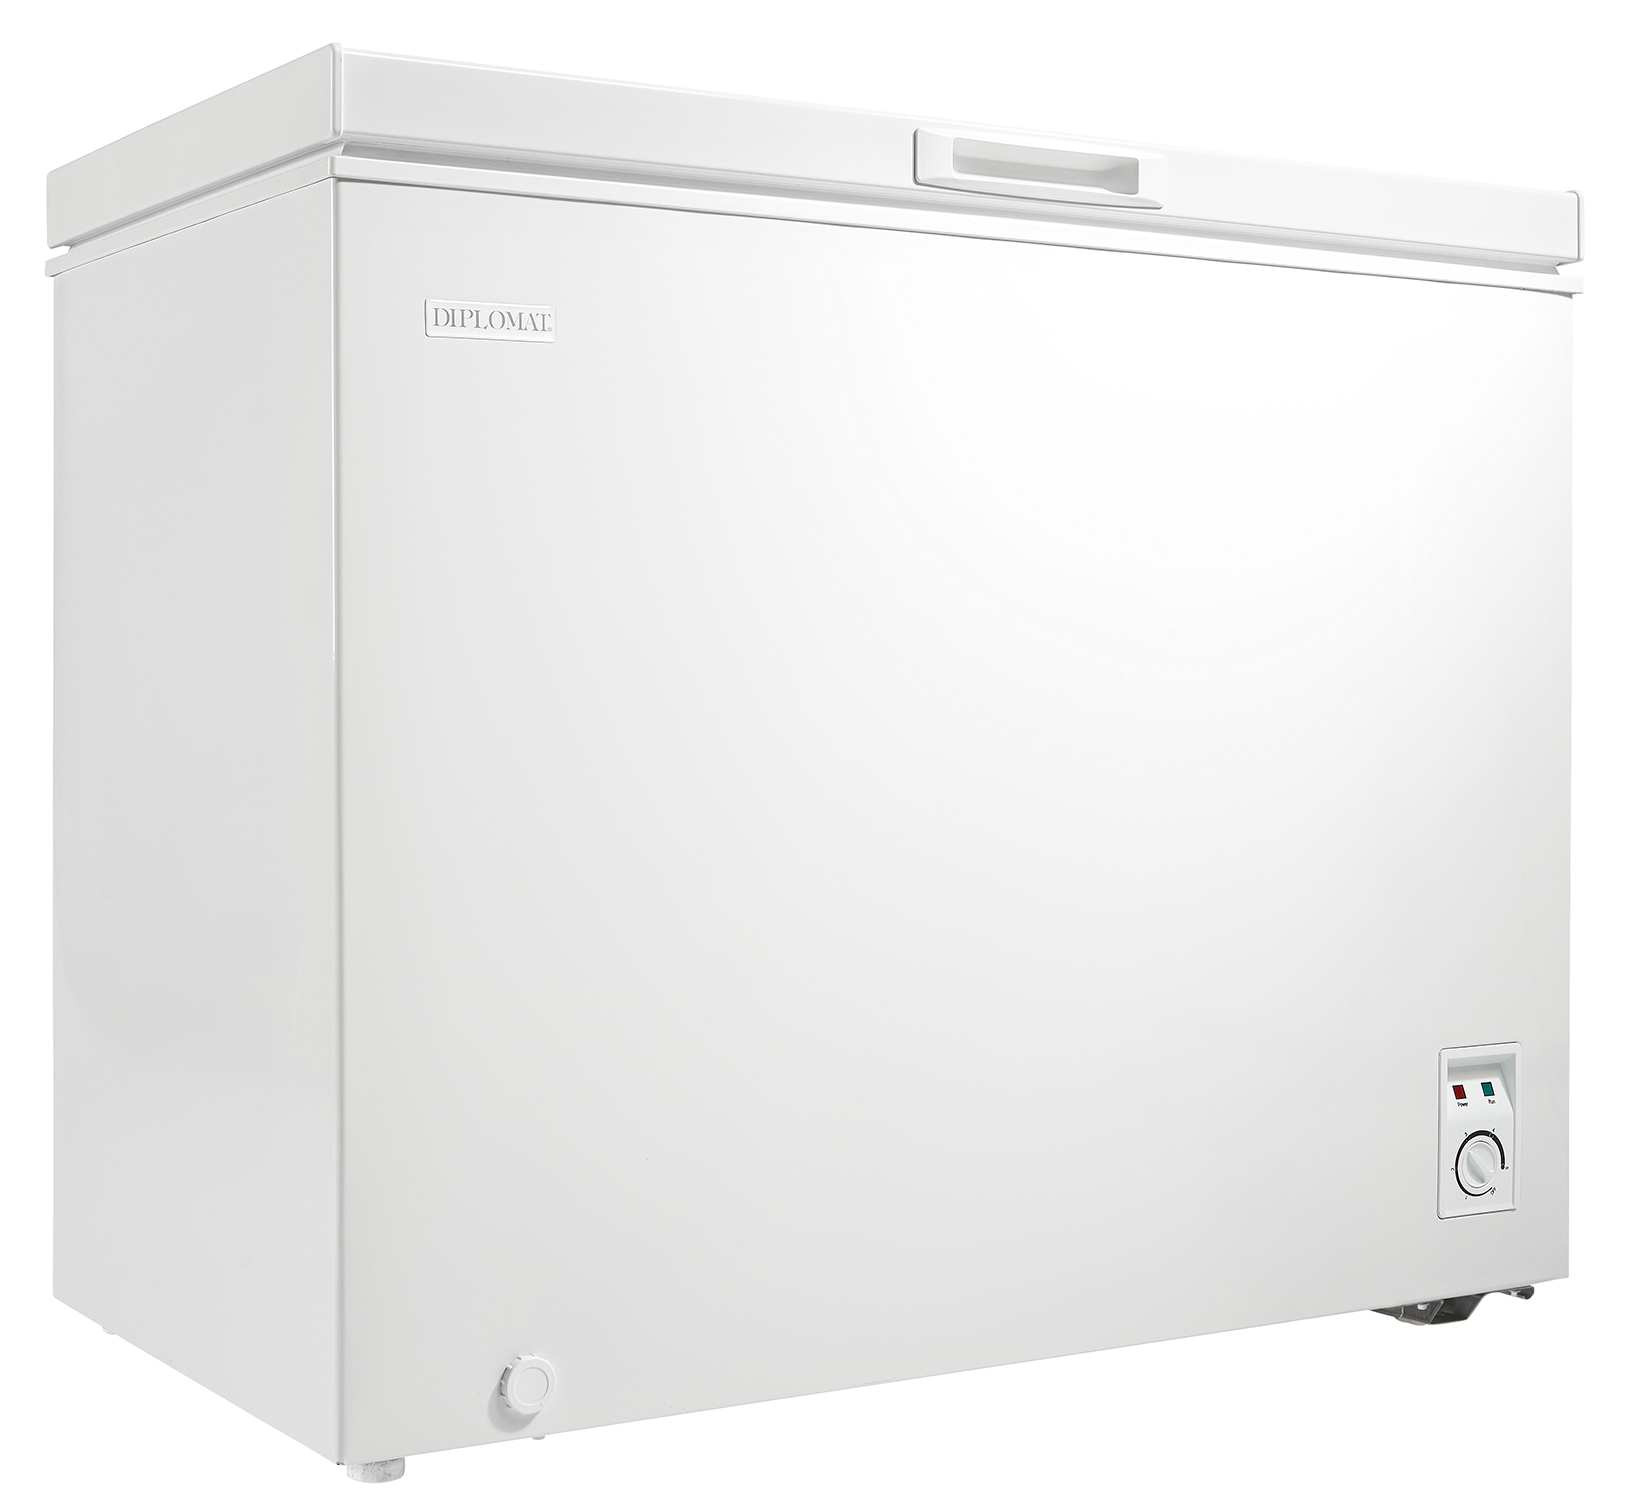 Uncategorized Diplomat Kitchen Appliances dcfm070c1wm diplomat 7 0 cu ft freezer en product gallery